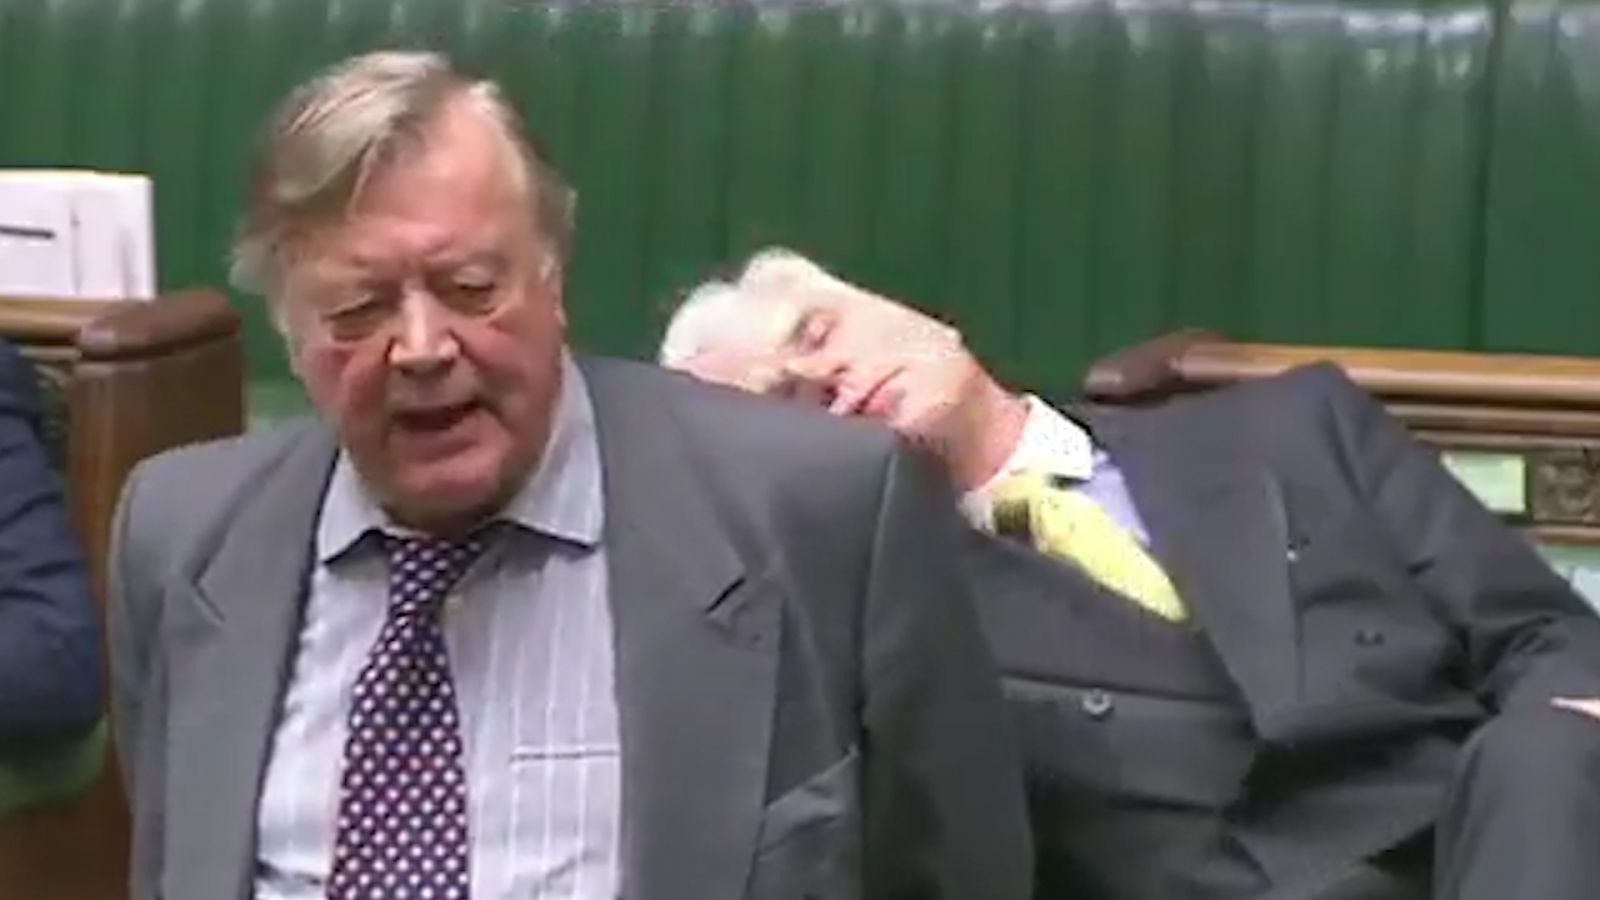 British MP falls asleep in parliament